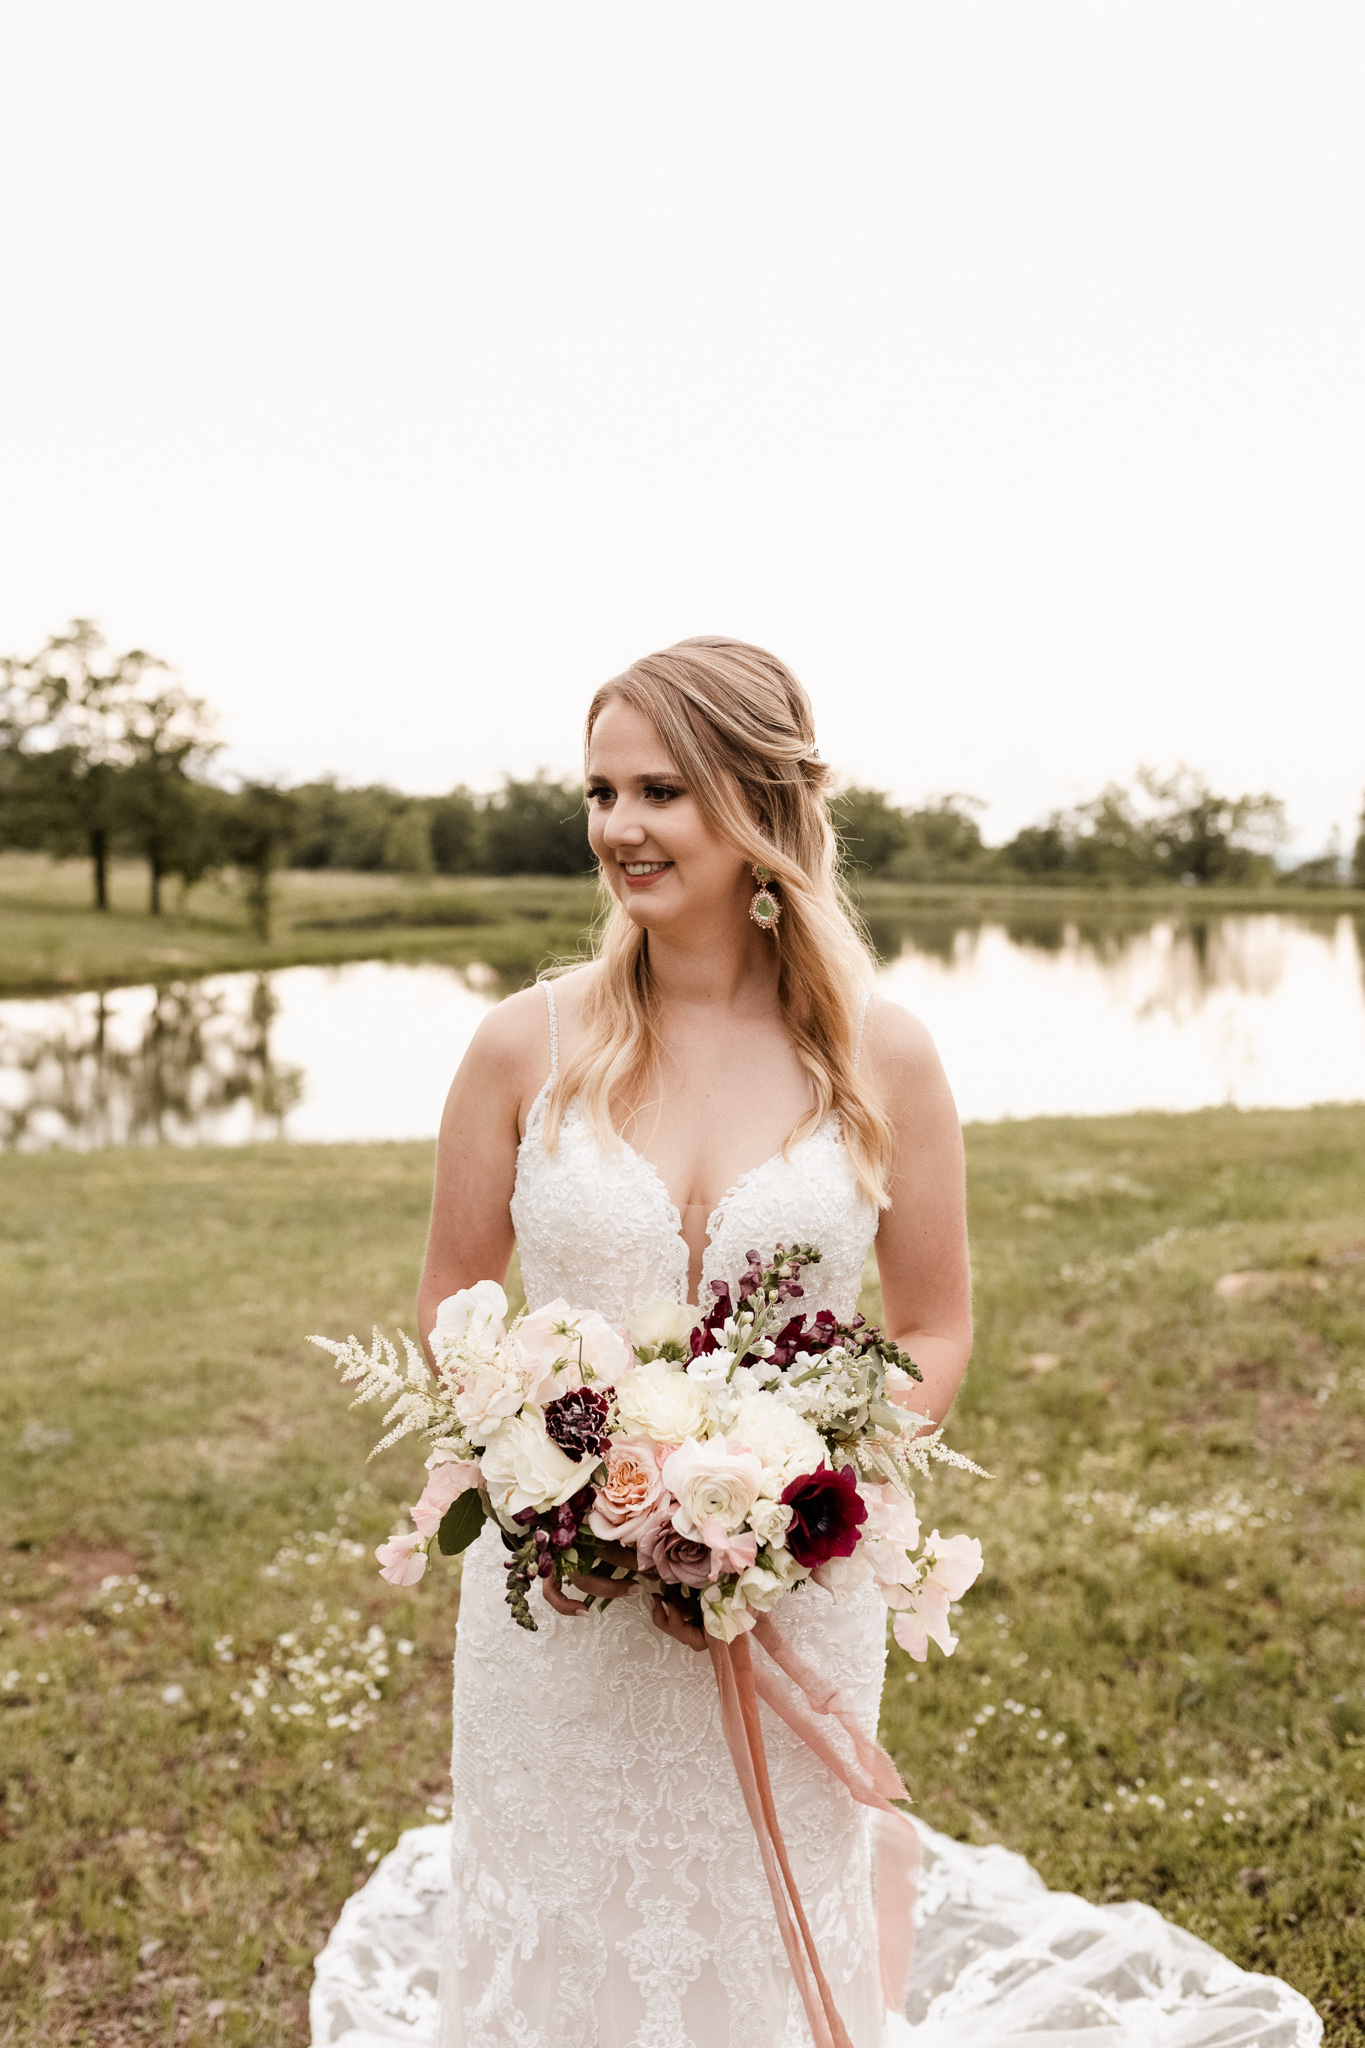 Brittany | Romantic Outdoor Bridals | Oklahoma Wedding Photographer-19.jpg